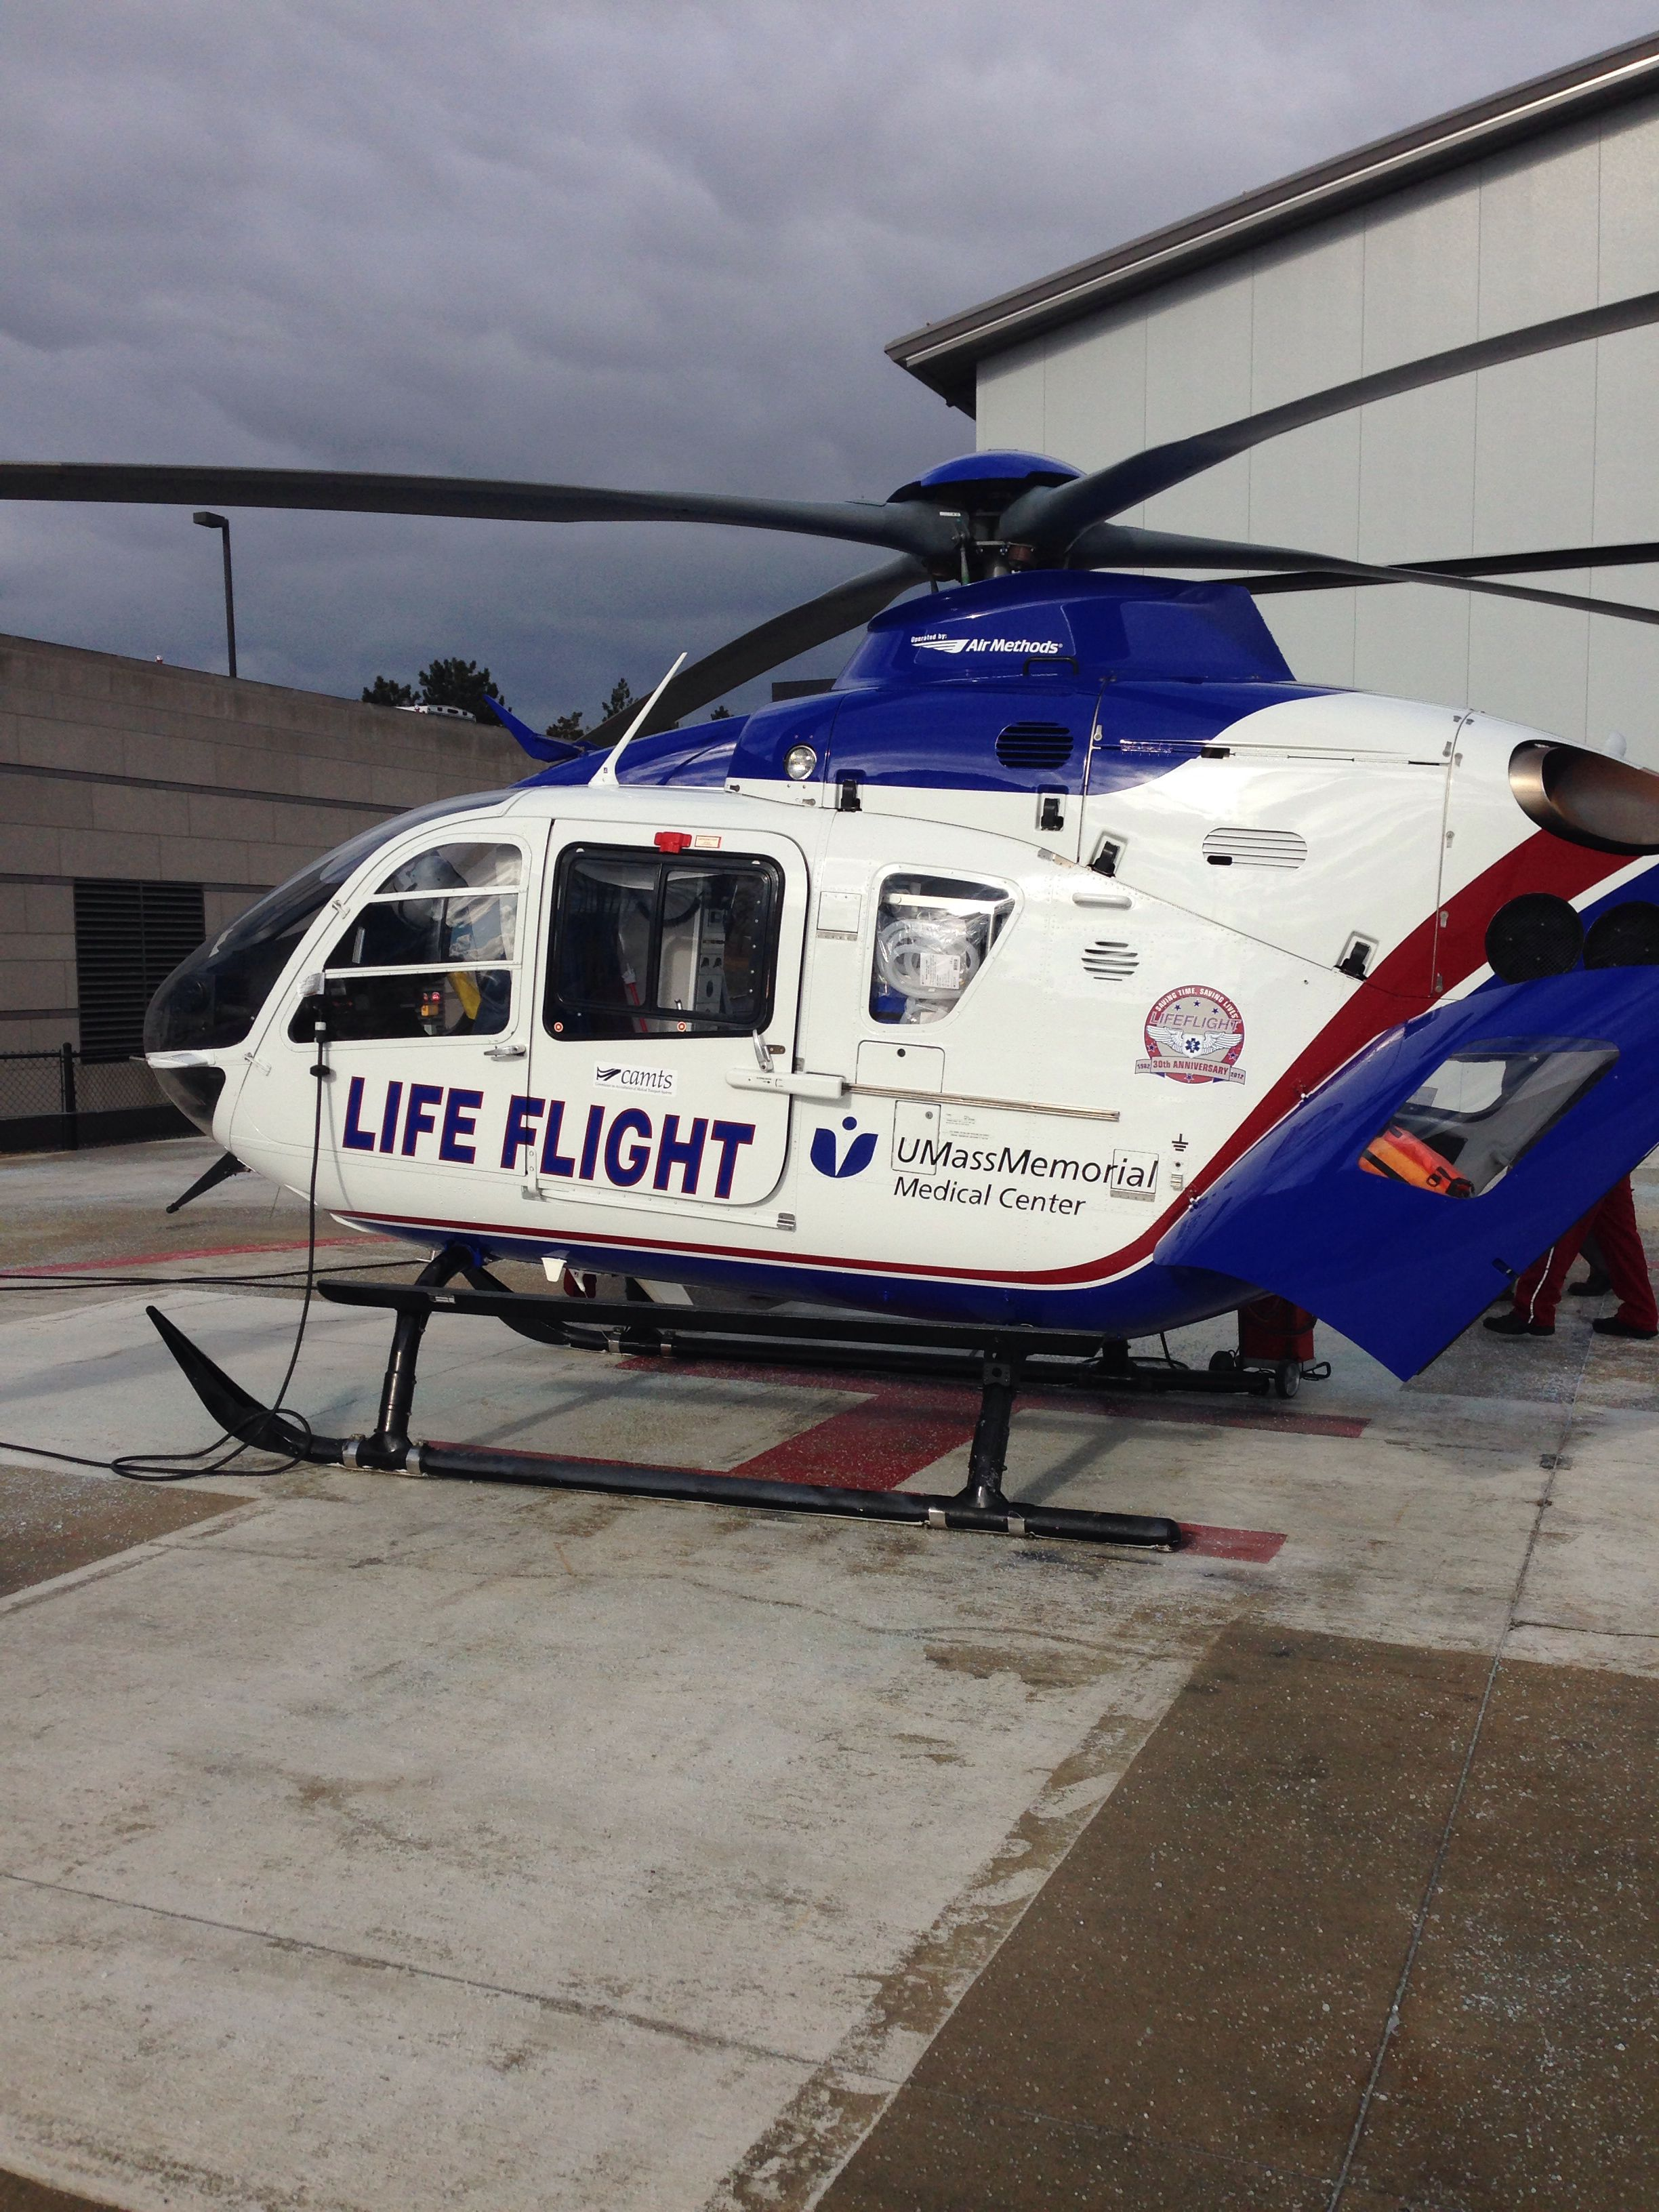 UMass Memorial LifeFlight at UMass Flight paramedic